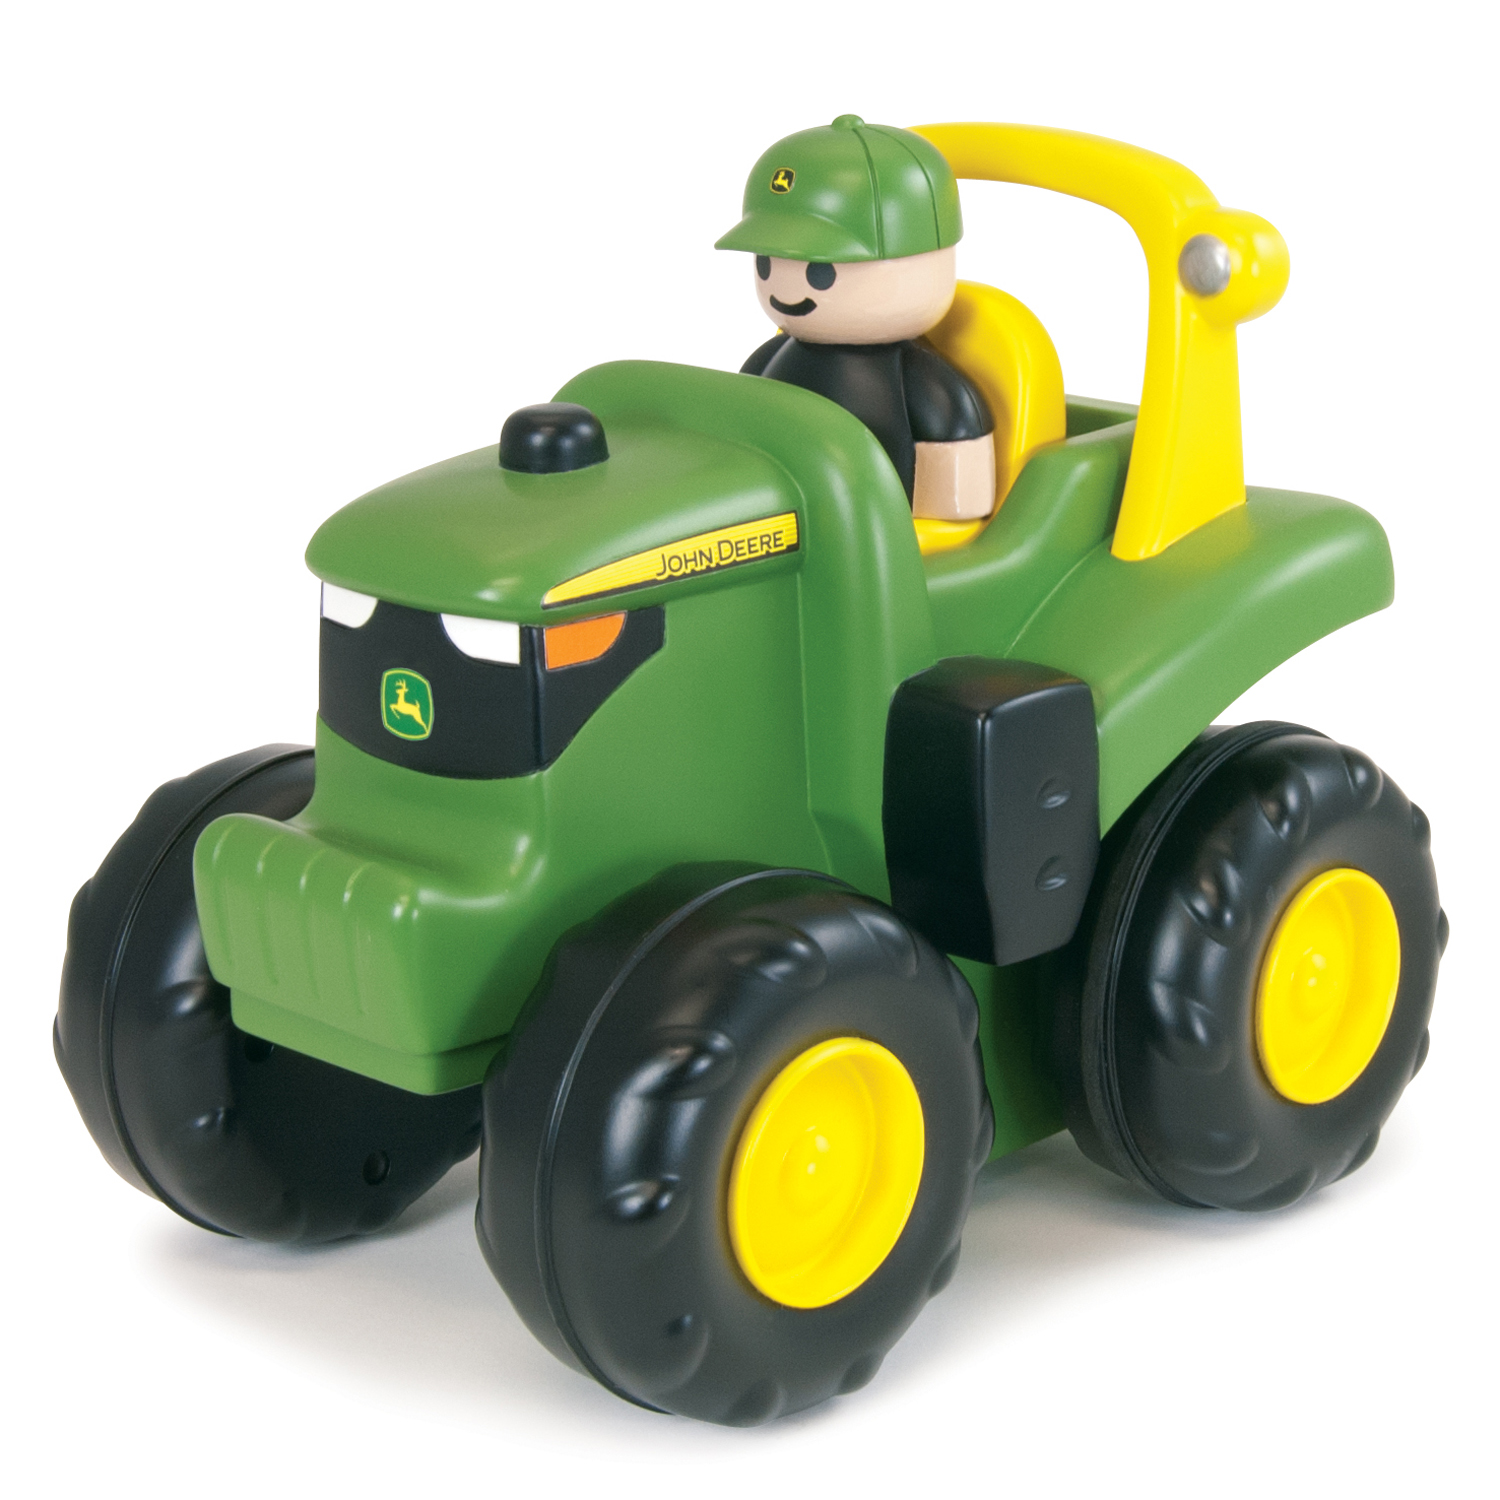 John Deere Toys Push And Roll Tractor At ToyStop